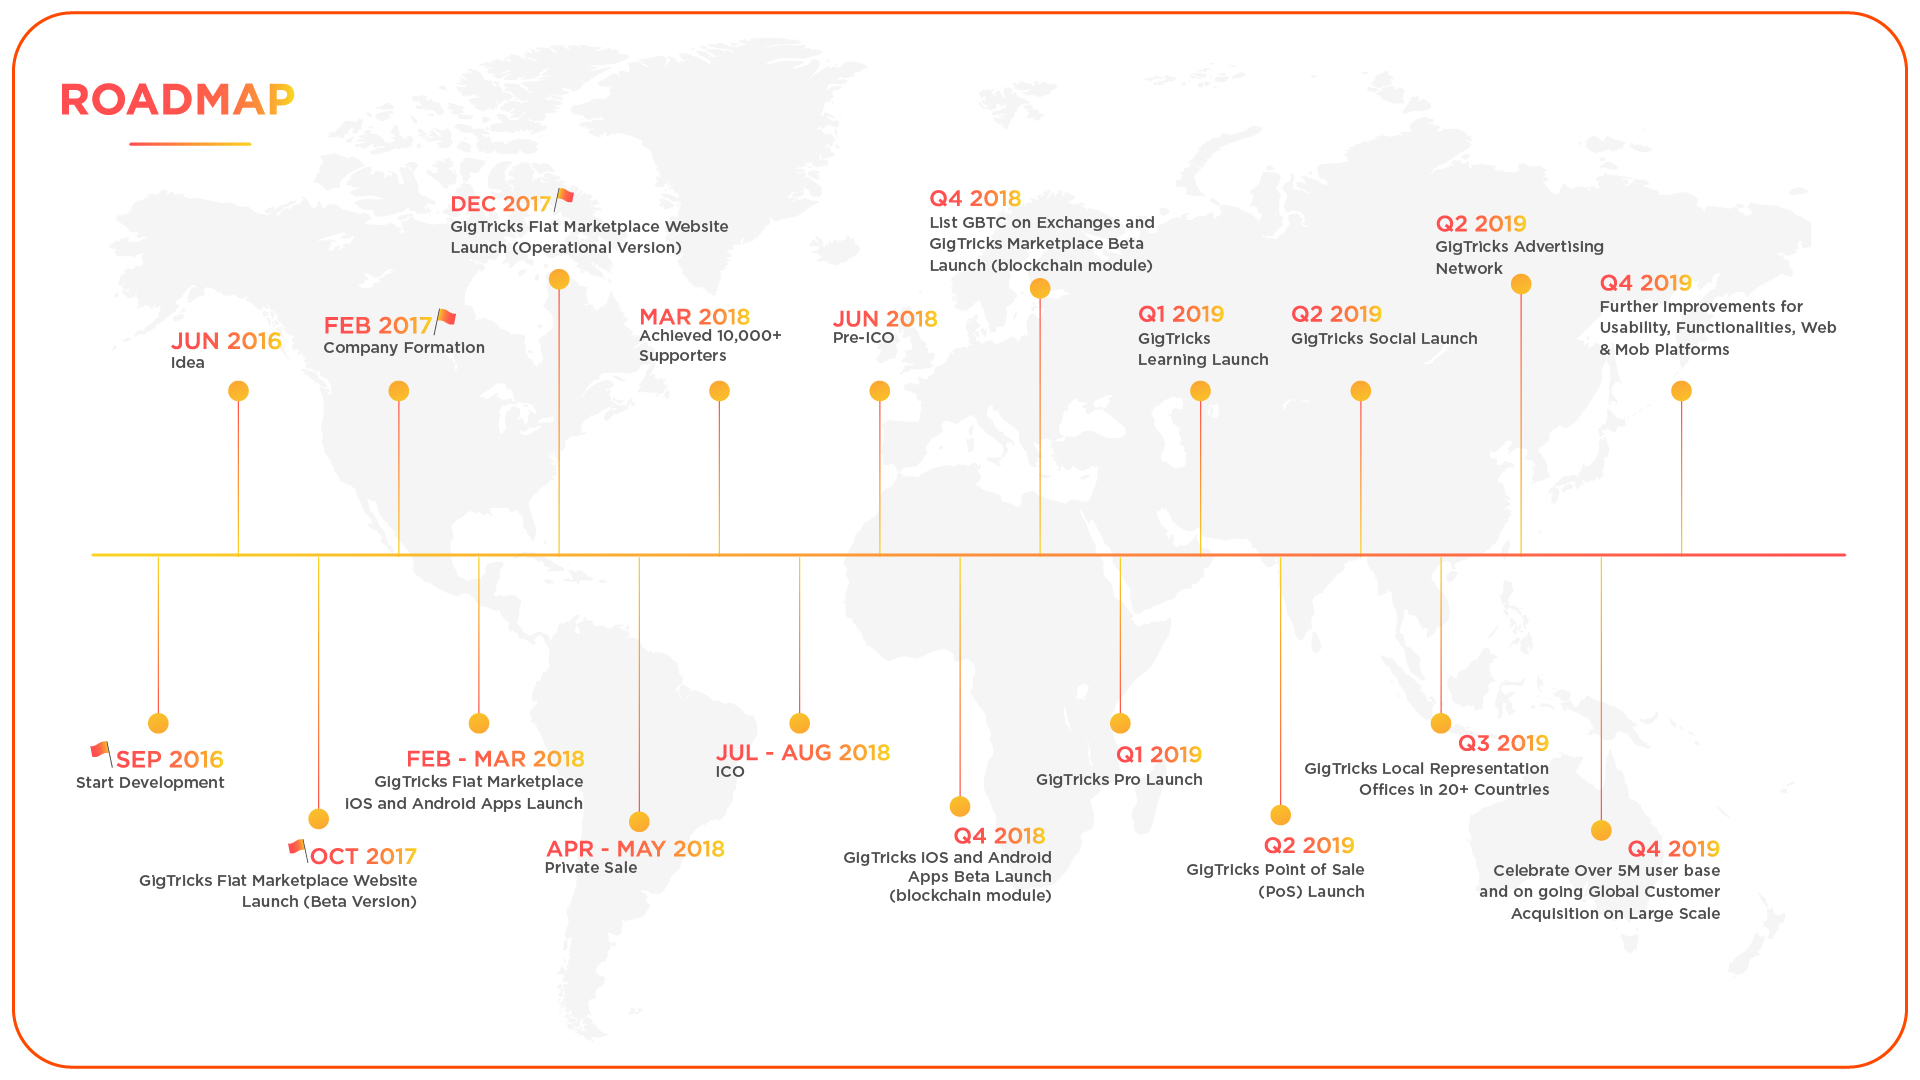 GigTricks_Roadmap.jpg